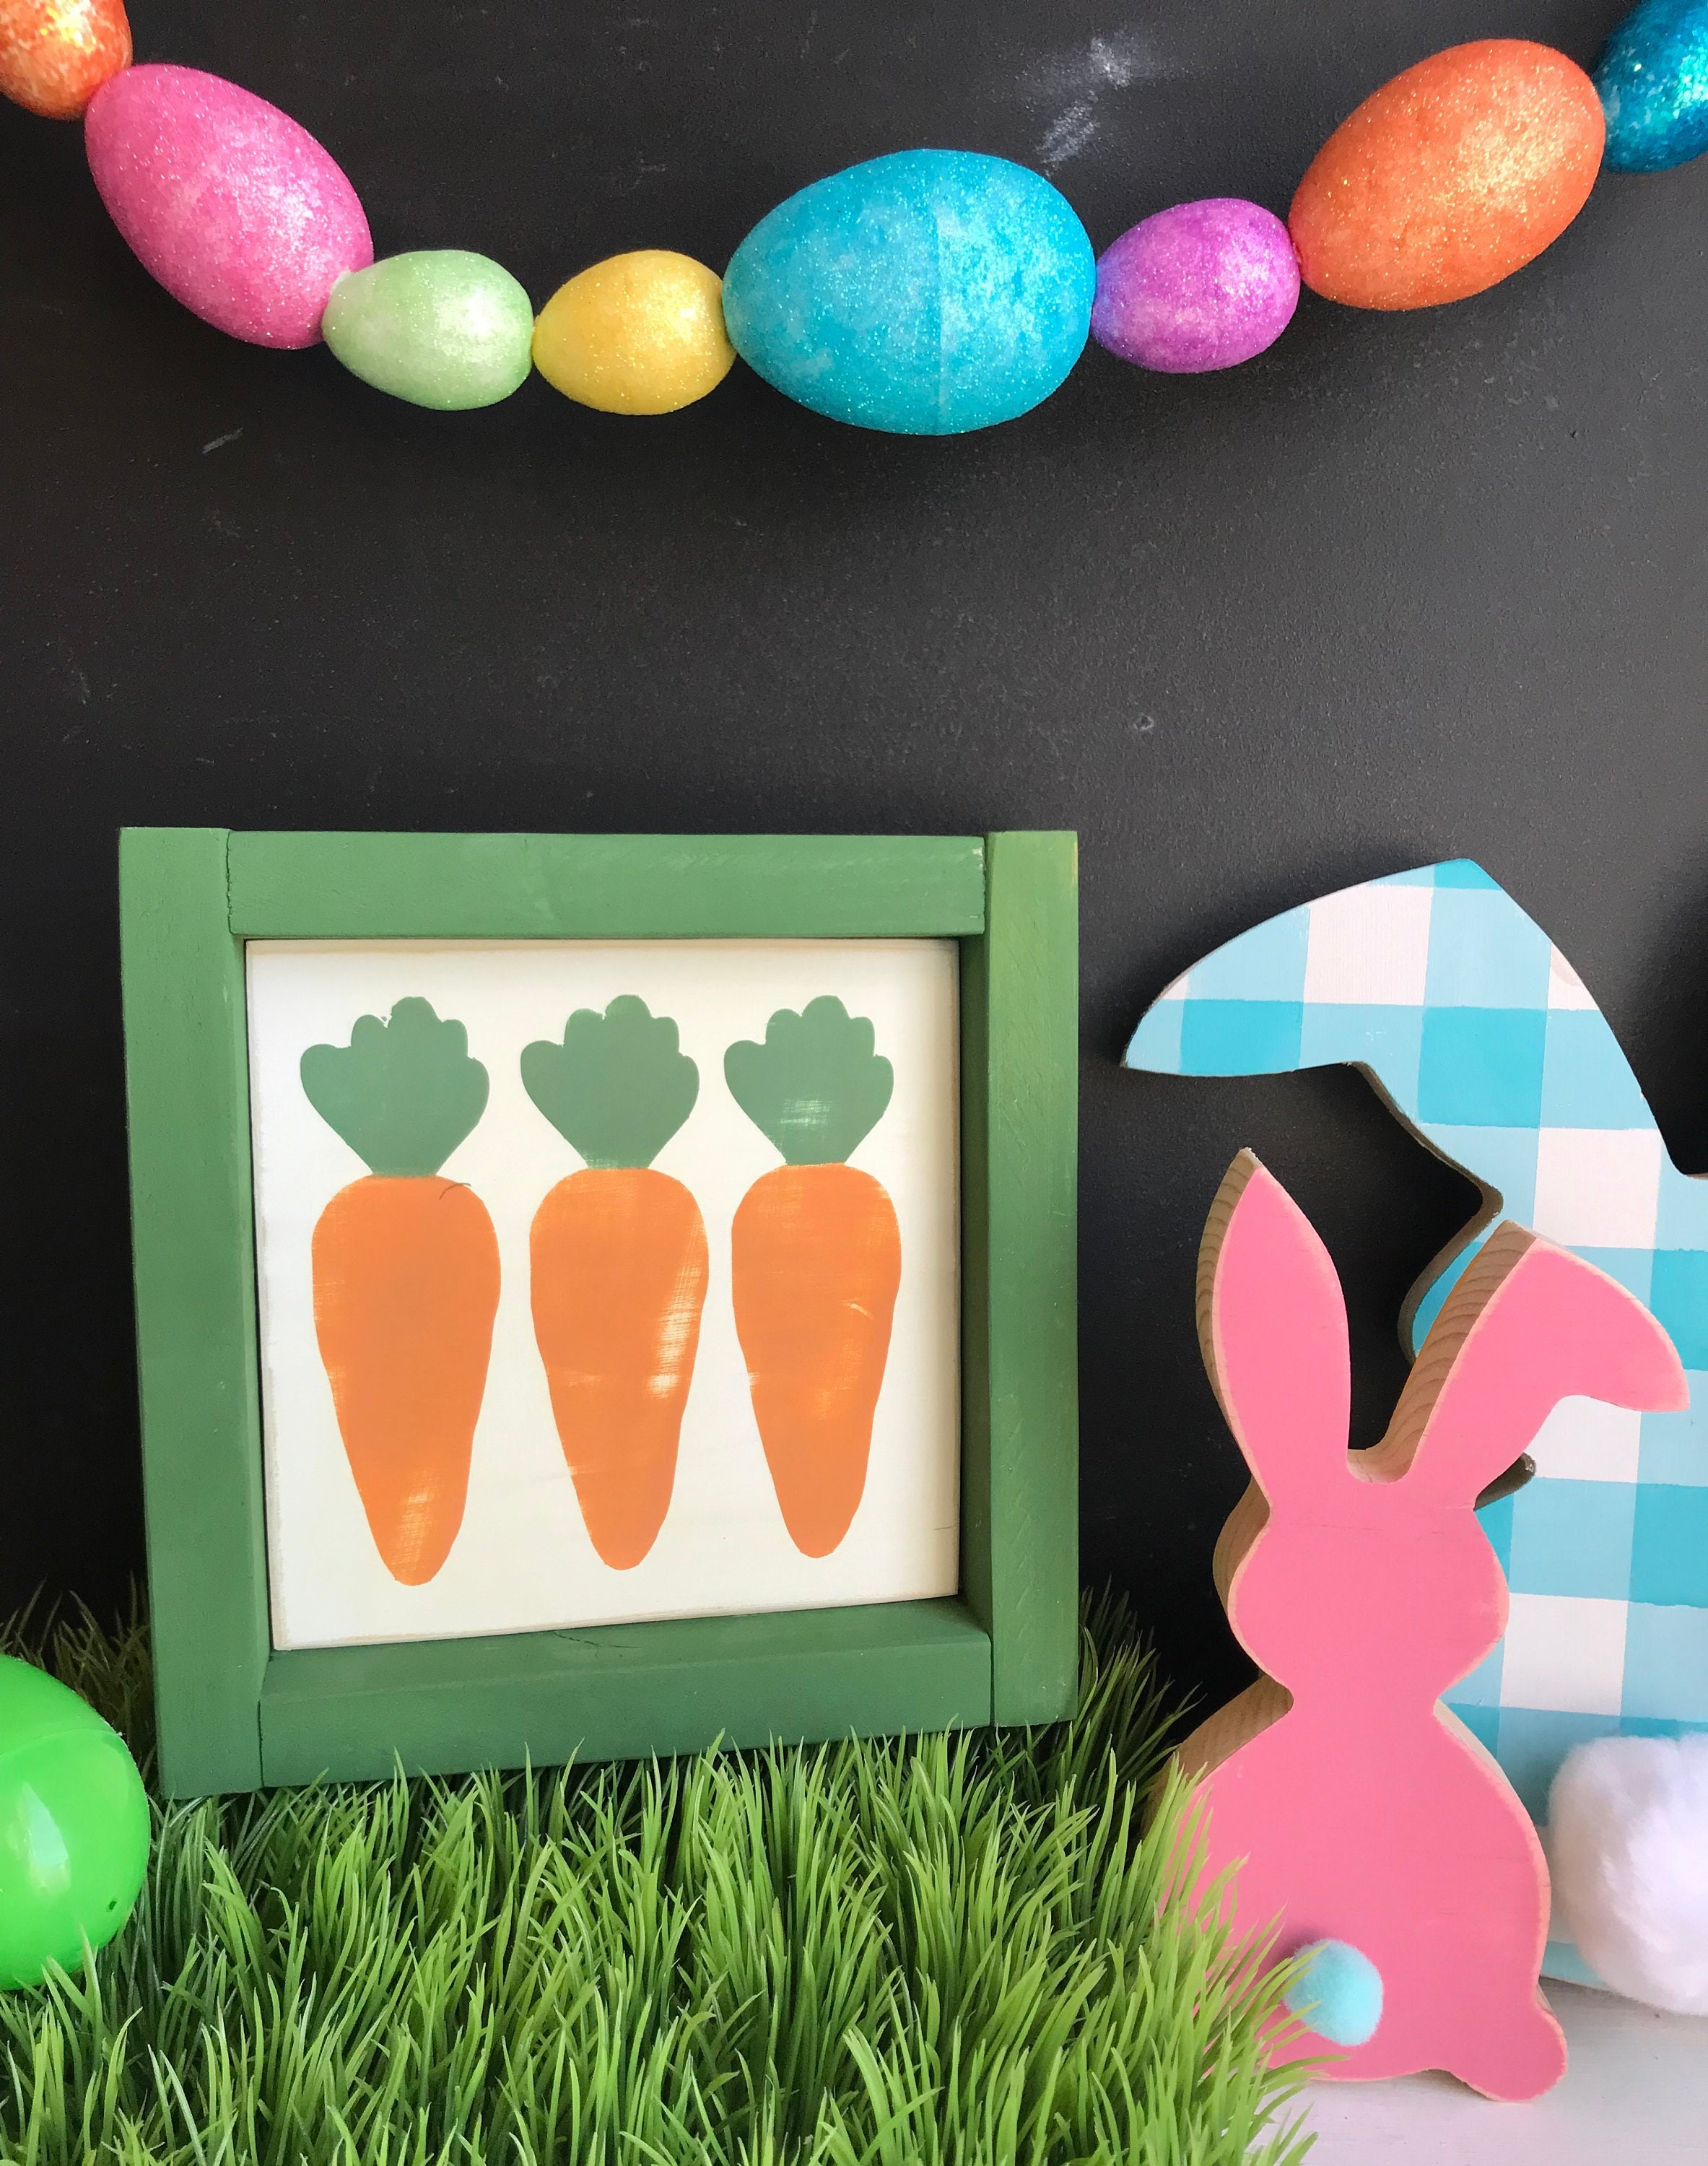 Peter Cottontail Framed Mini Sign Easter D\u00e9cor Tiered Tray D\u00e9cor Happy Spring Easter Mini Signs 4 x 4 Tiered Tray Signs